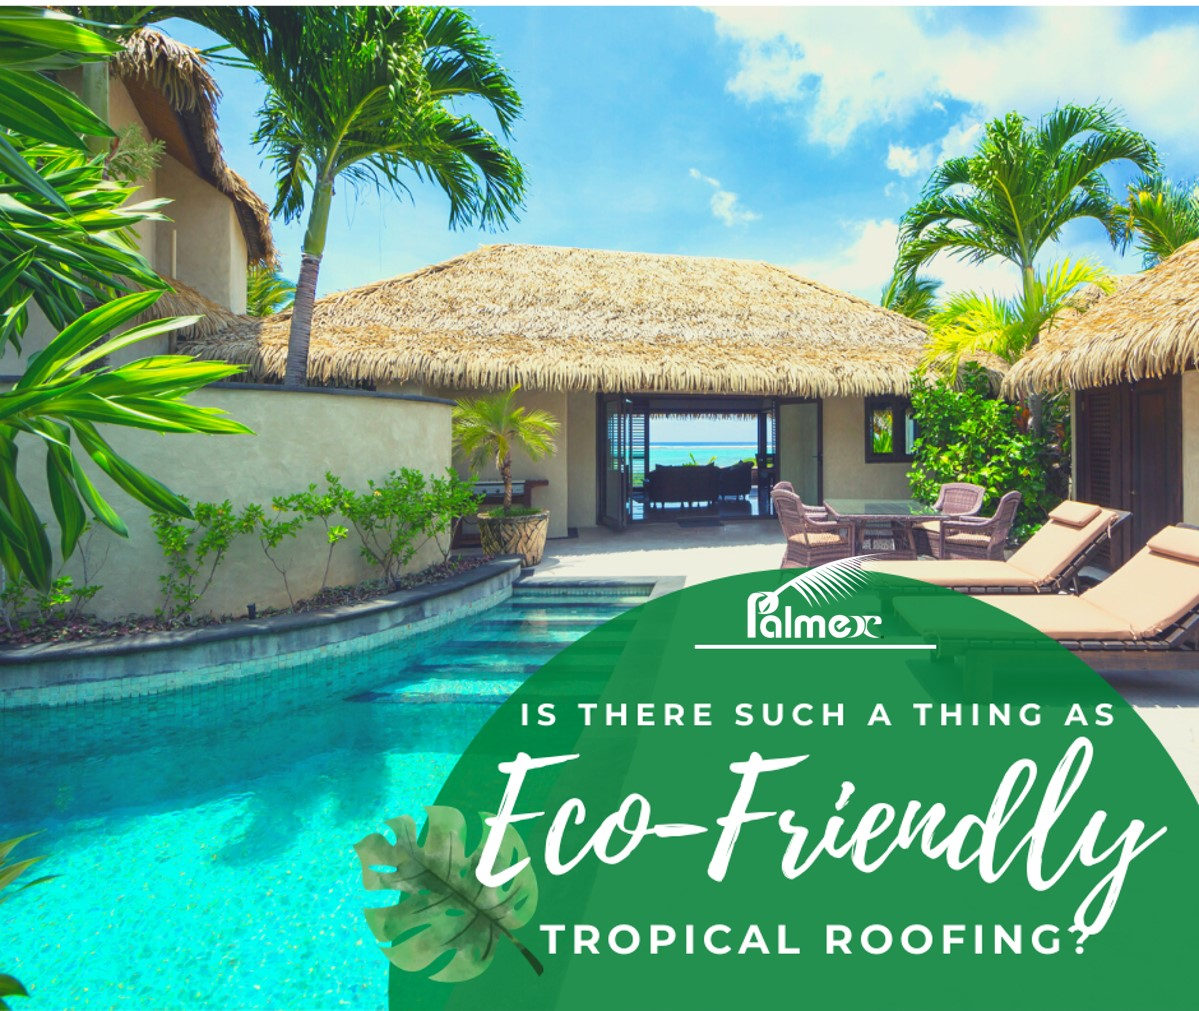 Is there such a thing as Eco-Friendly Tropical Roofing?